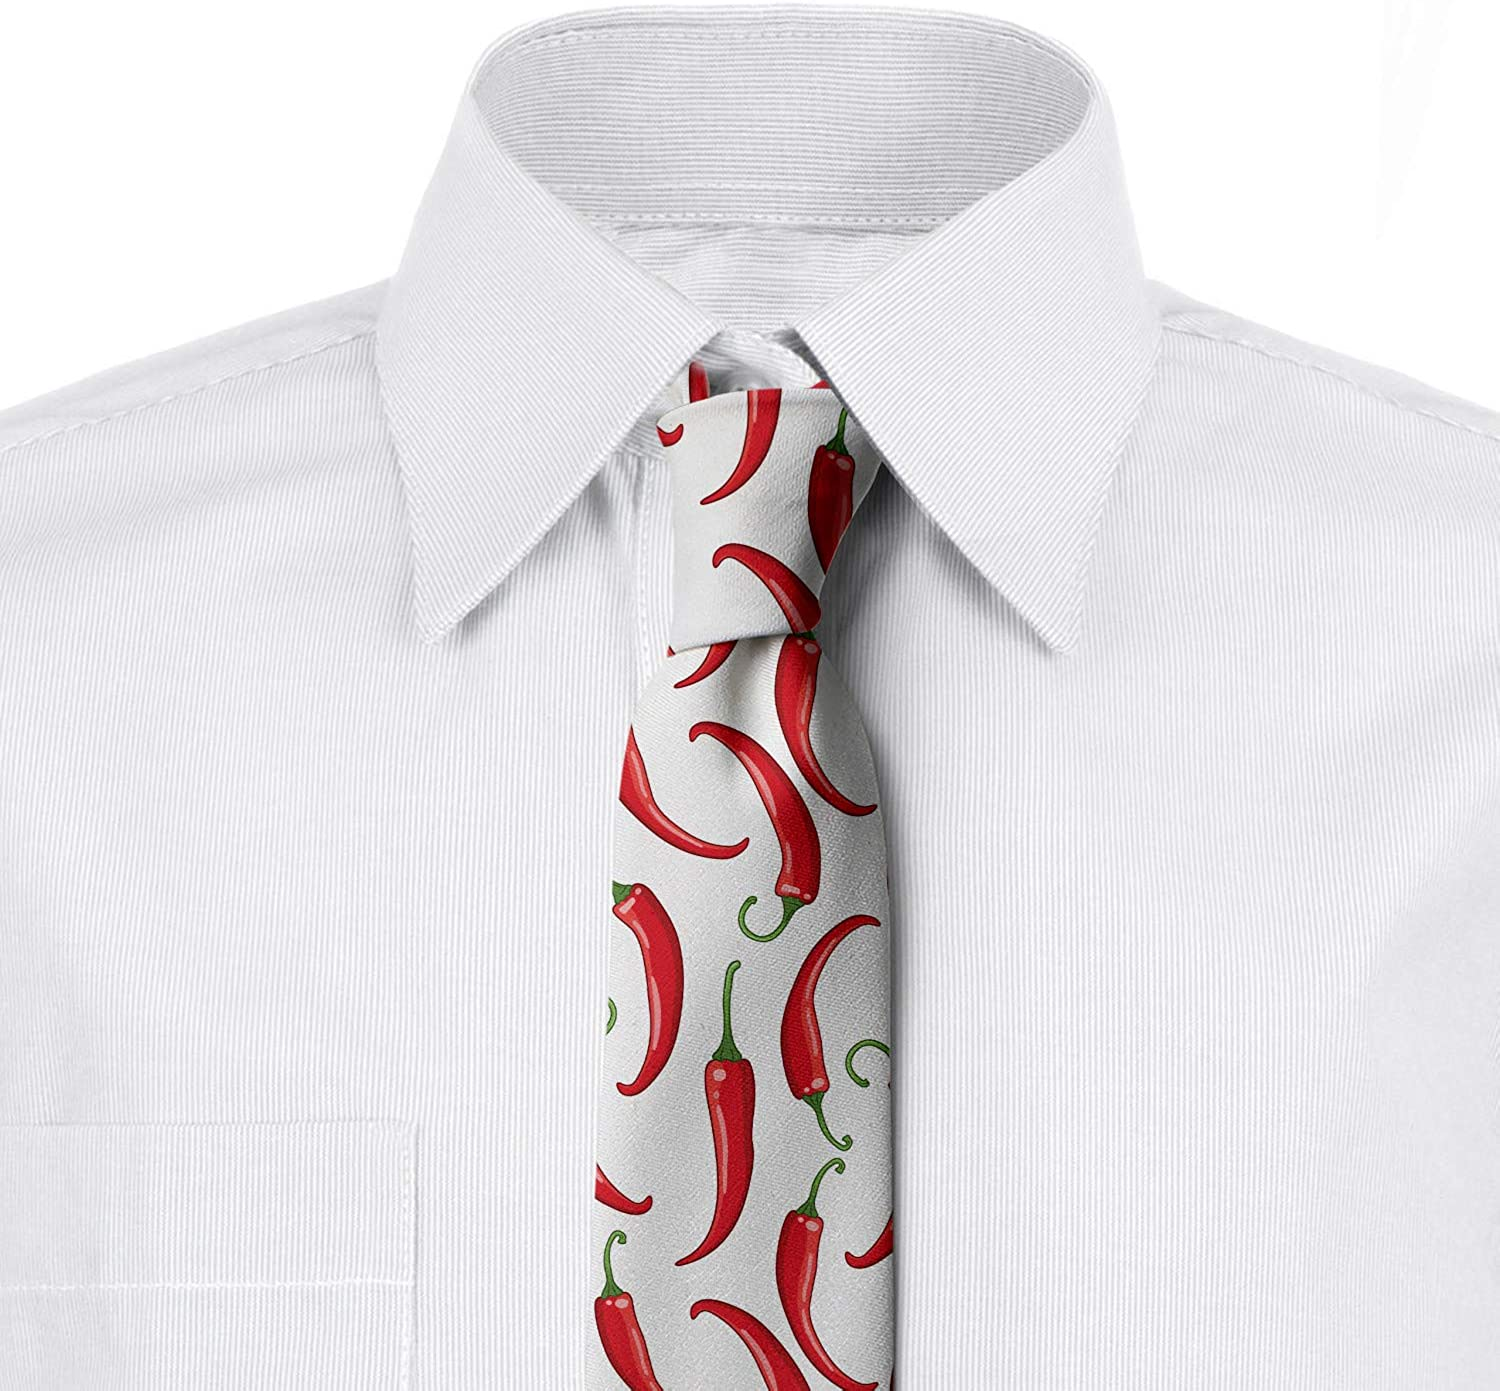 3.7 Ambesonne Mens Tie Vermilion and Green Spicy Vegetable Composition